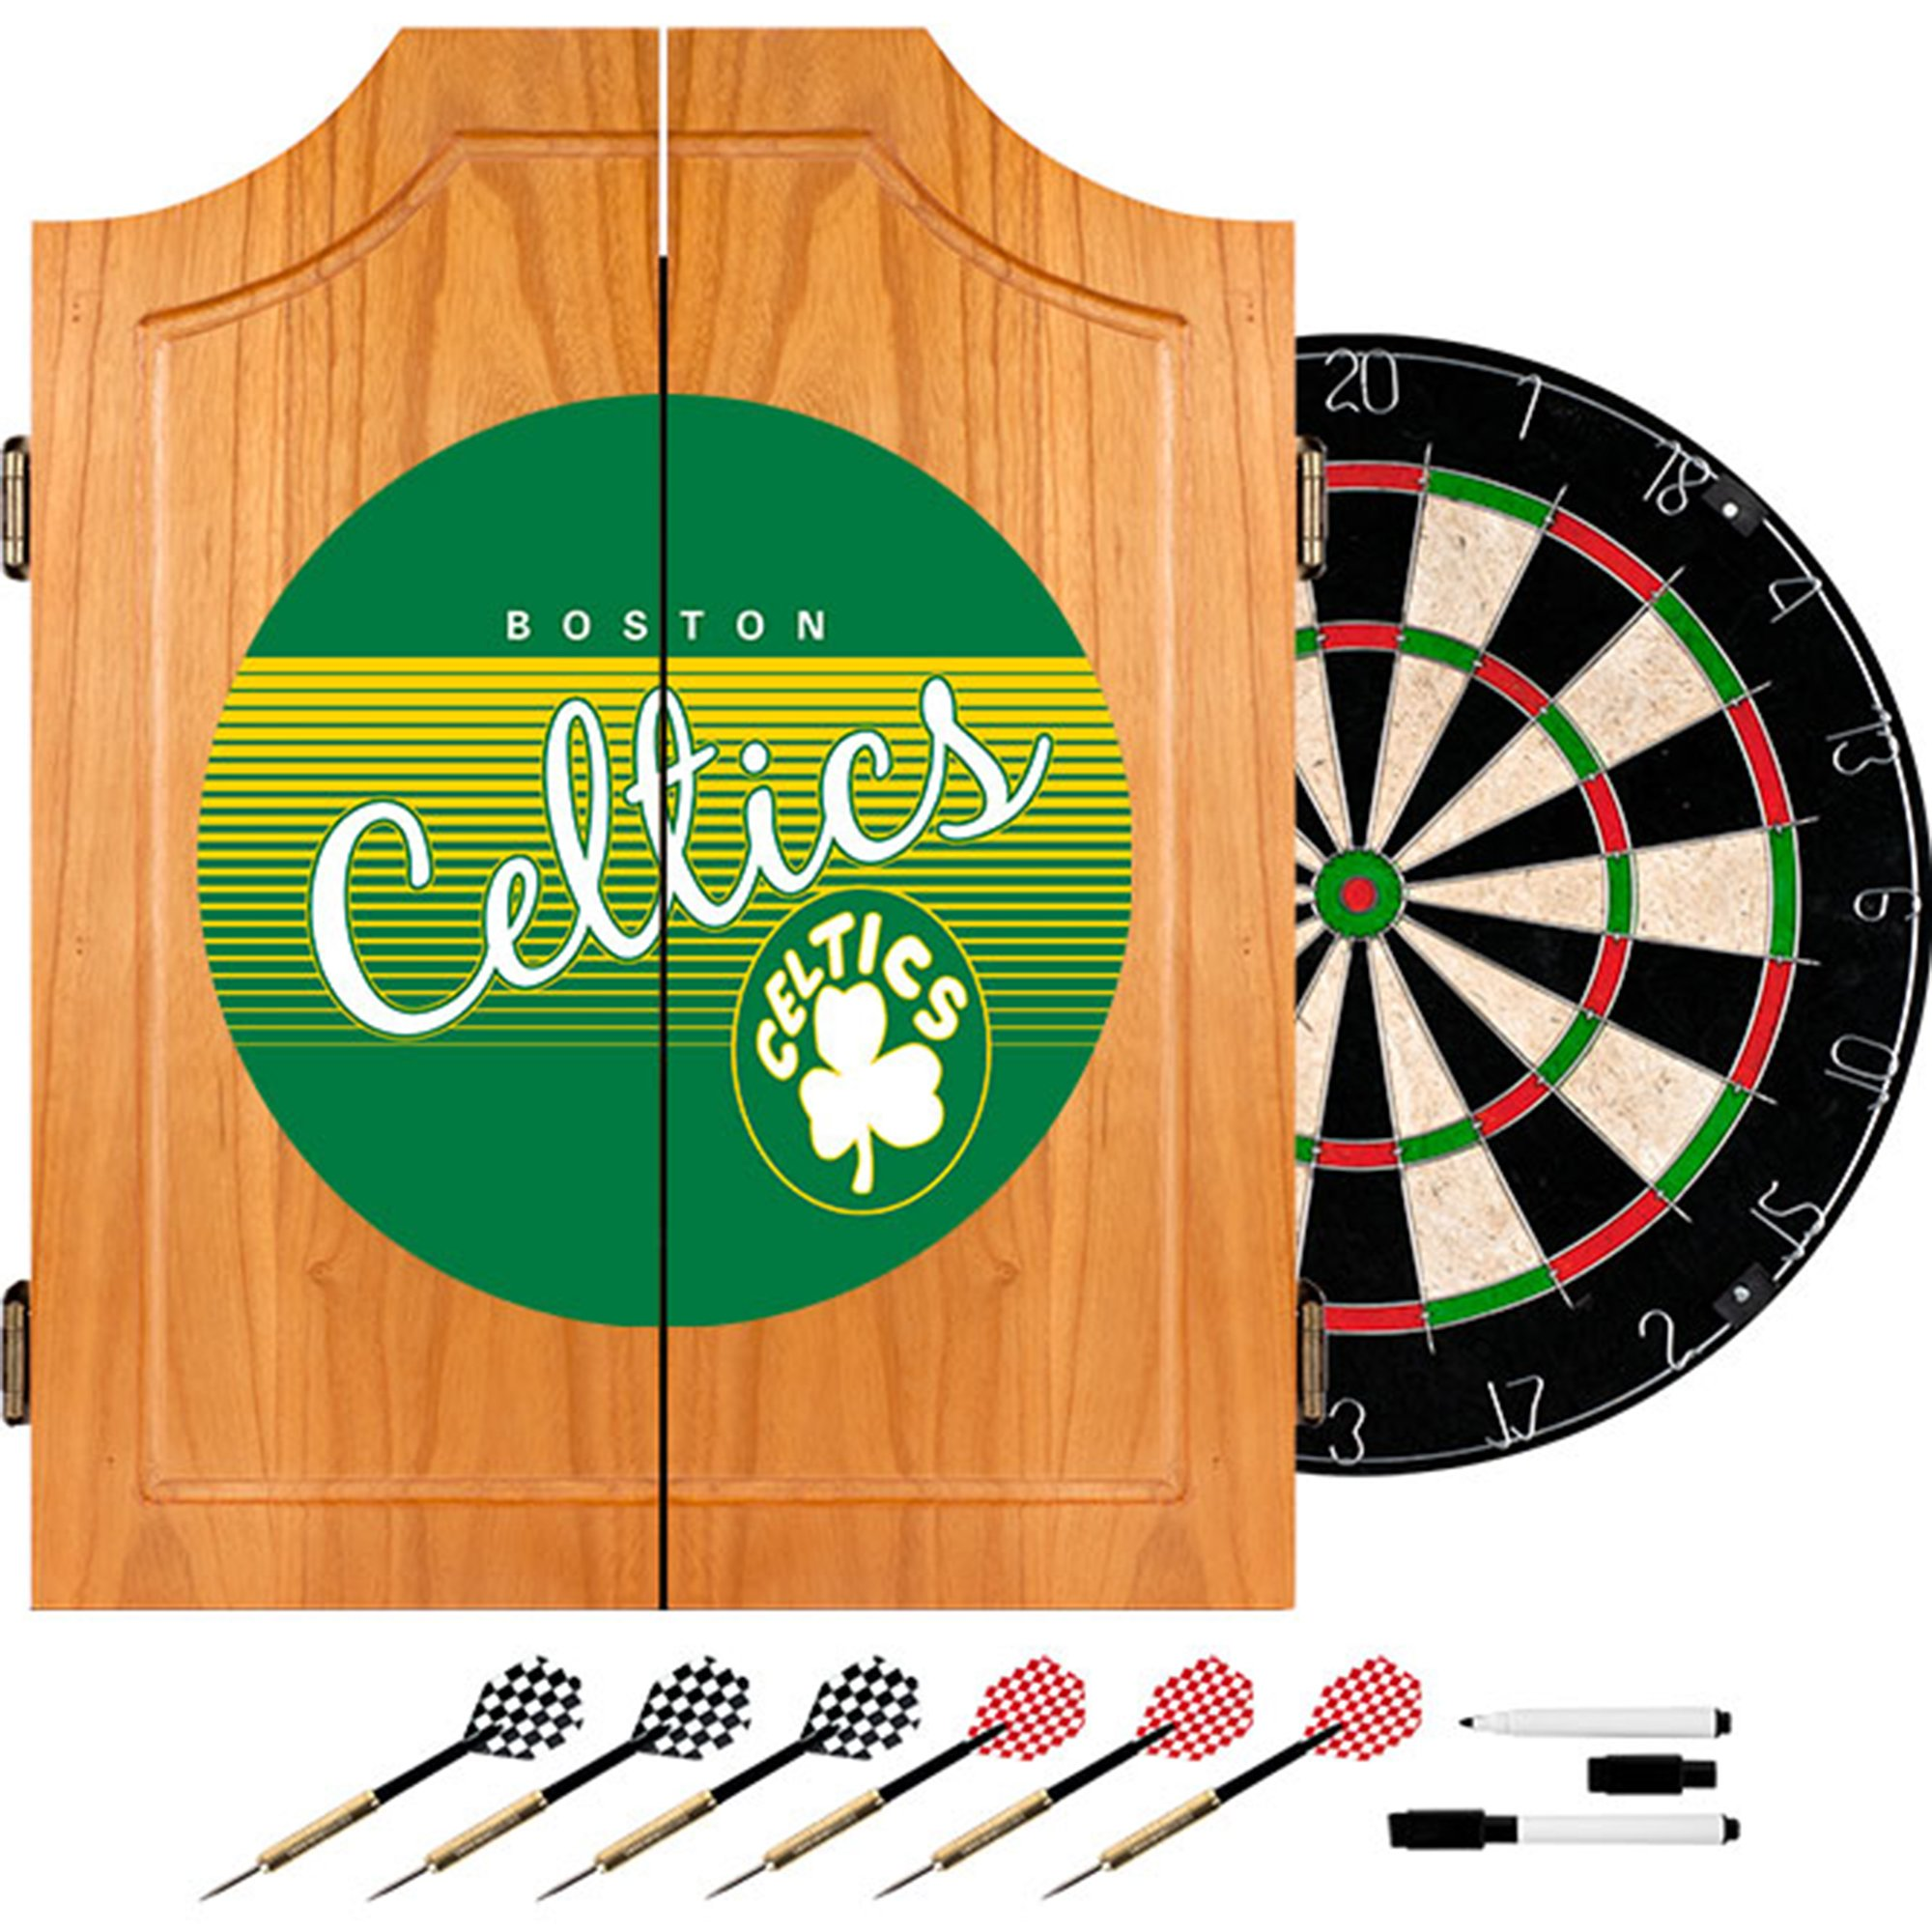 NBA Boston Celtics Wood Dart Cabinet Set, One Size, Brown by Trademark Global